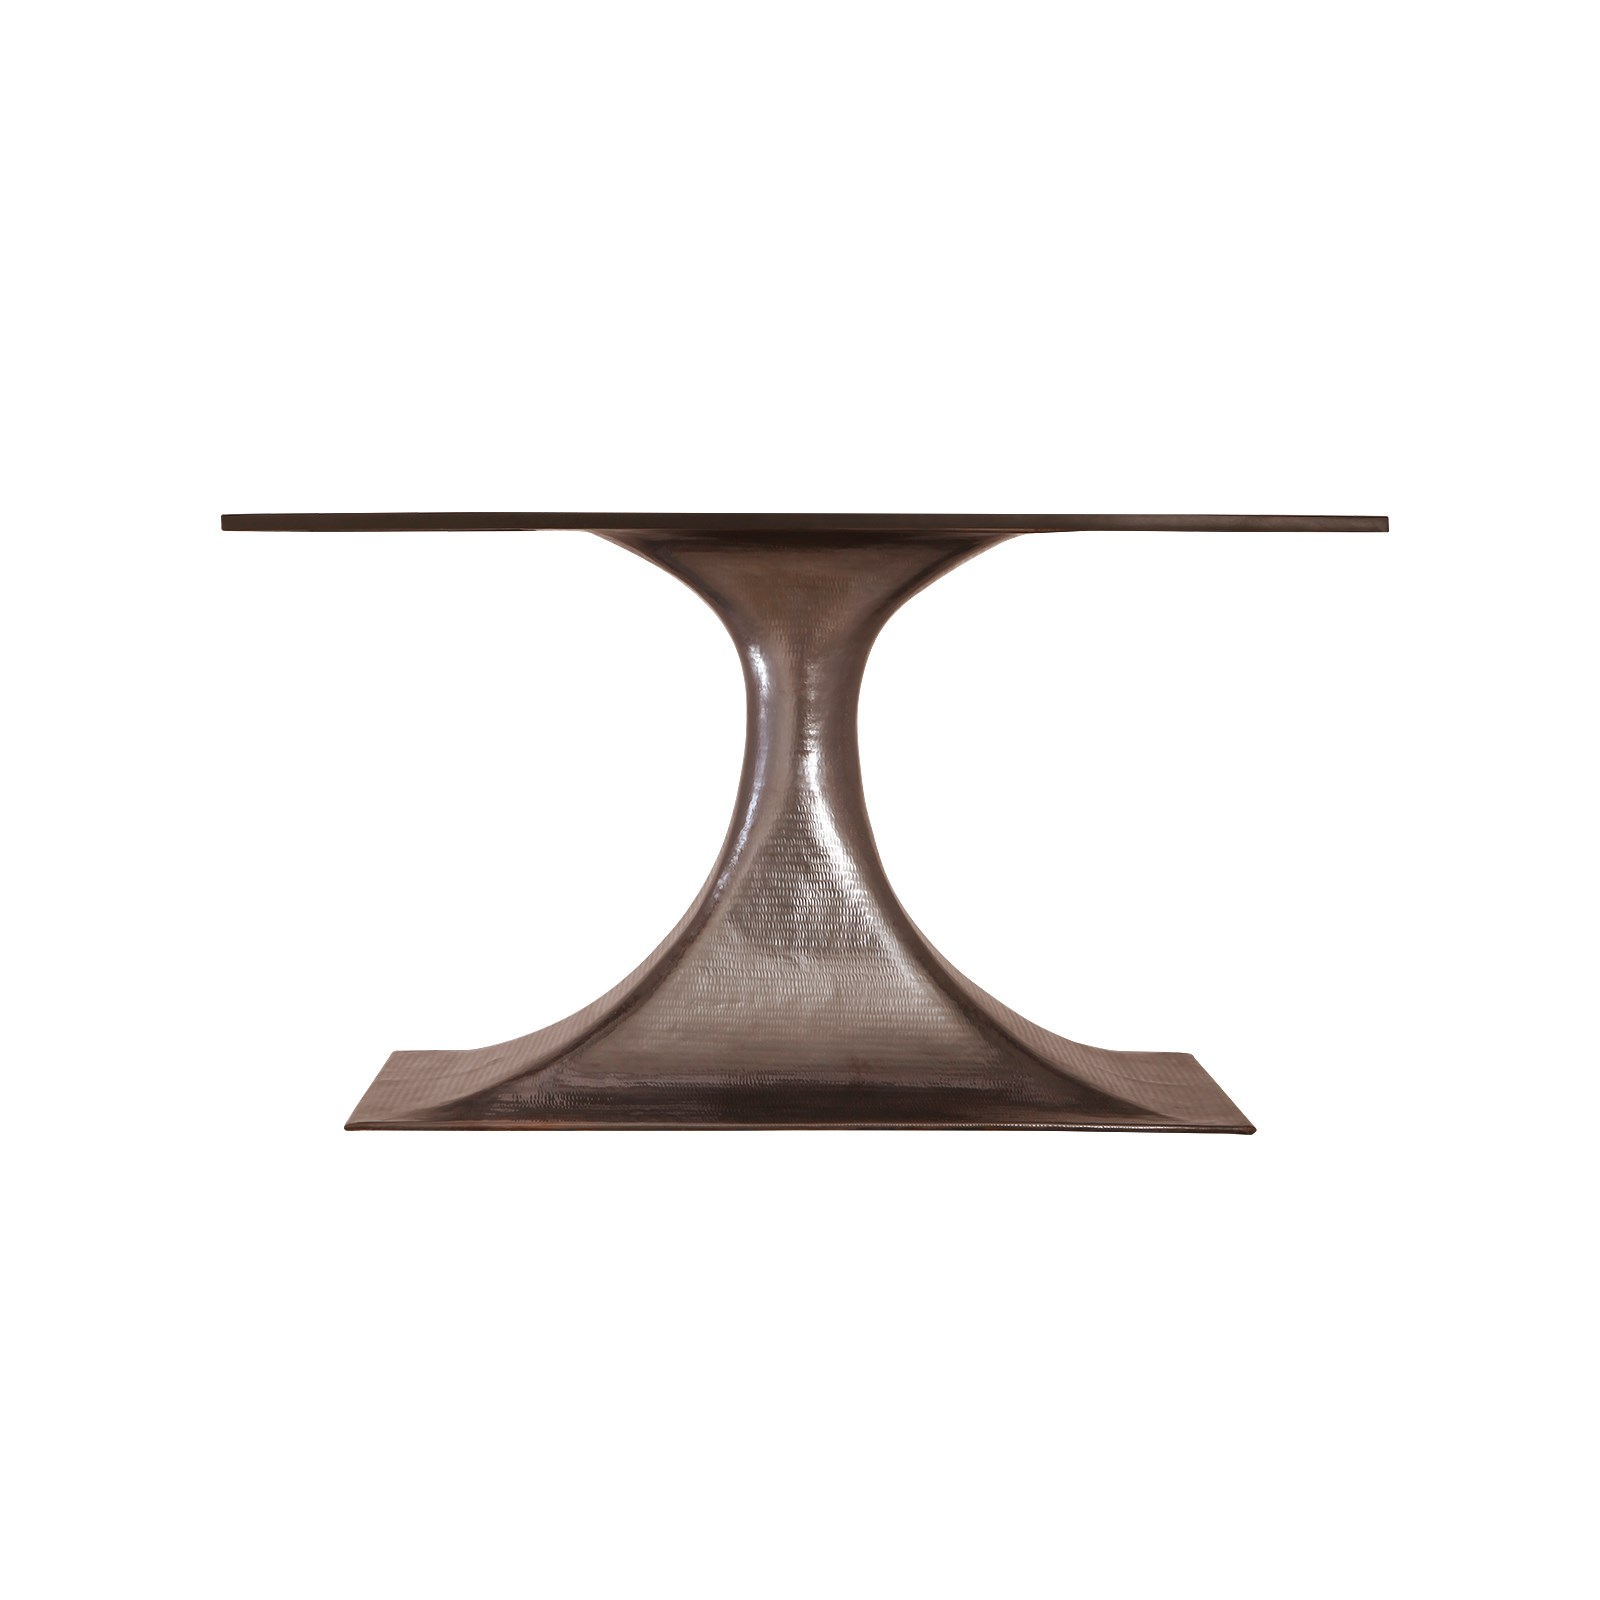 designer love copper table sto zebi accent stockholm bronze oval bungalow wooden cooler slim lamp decoration piece for home vintage sofa styles tablet con usb round wicker side